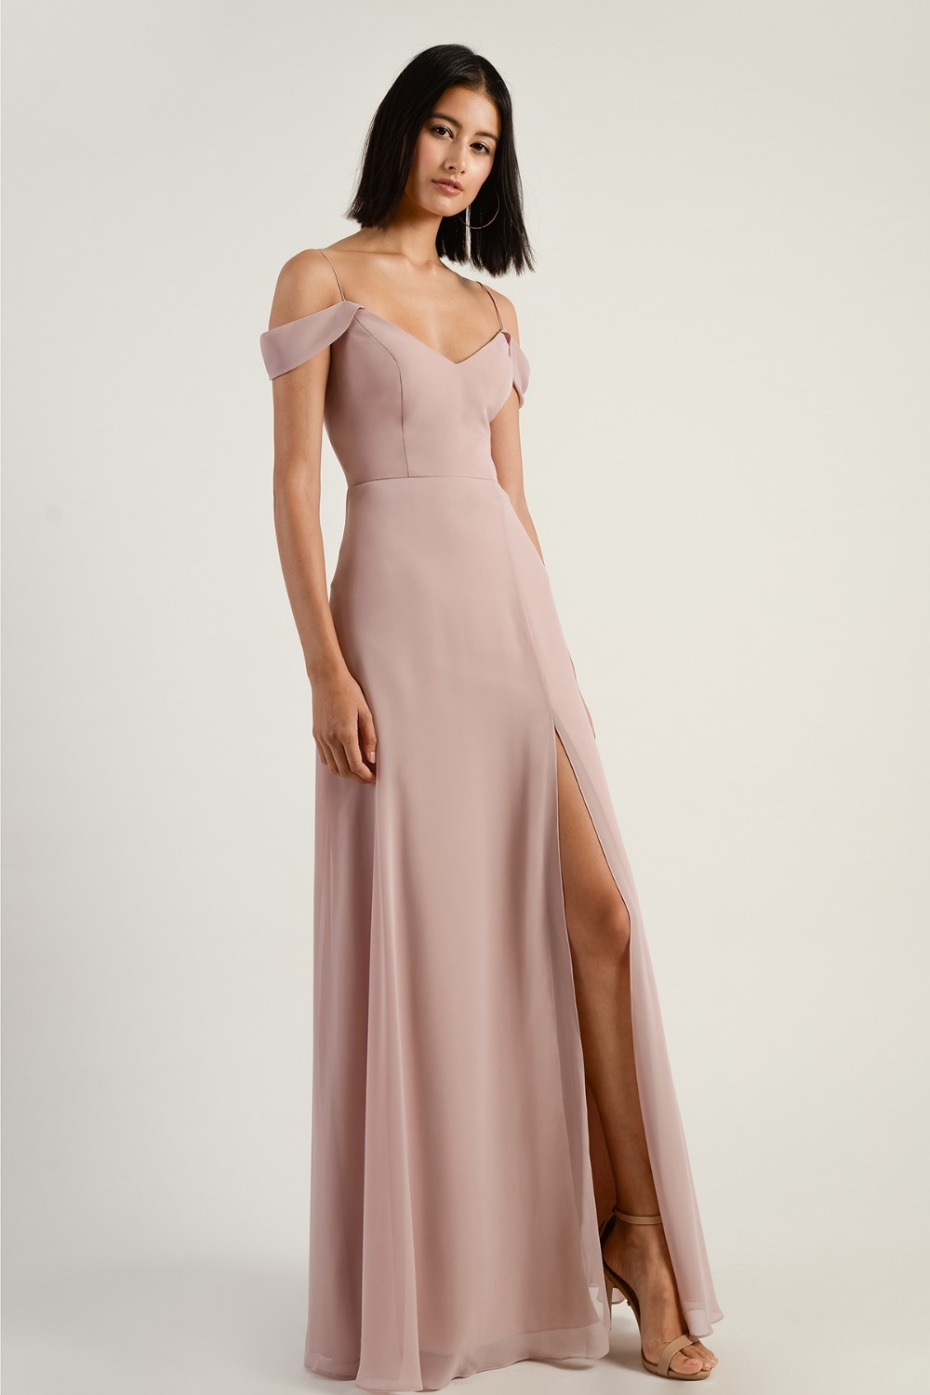 758956_jenny-yoo-collection-bridesmaids